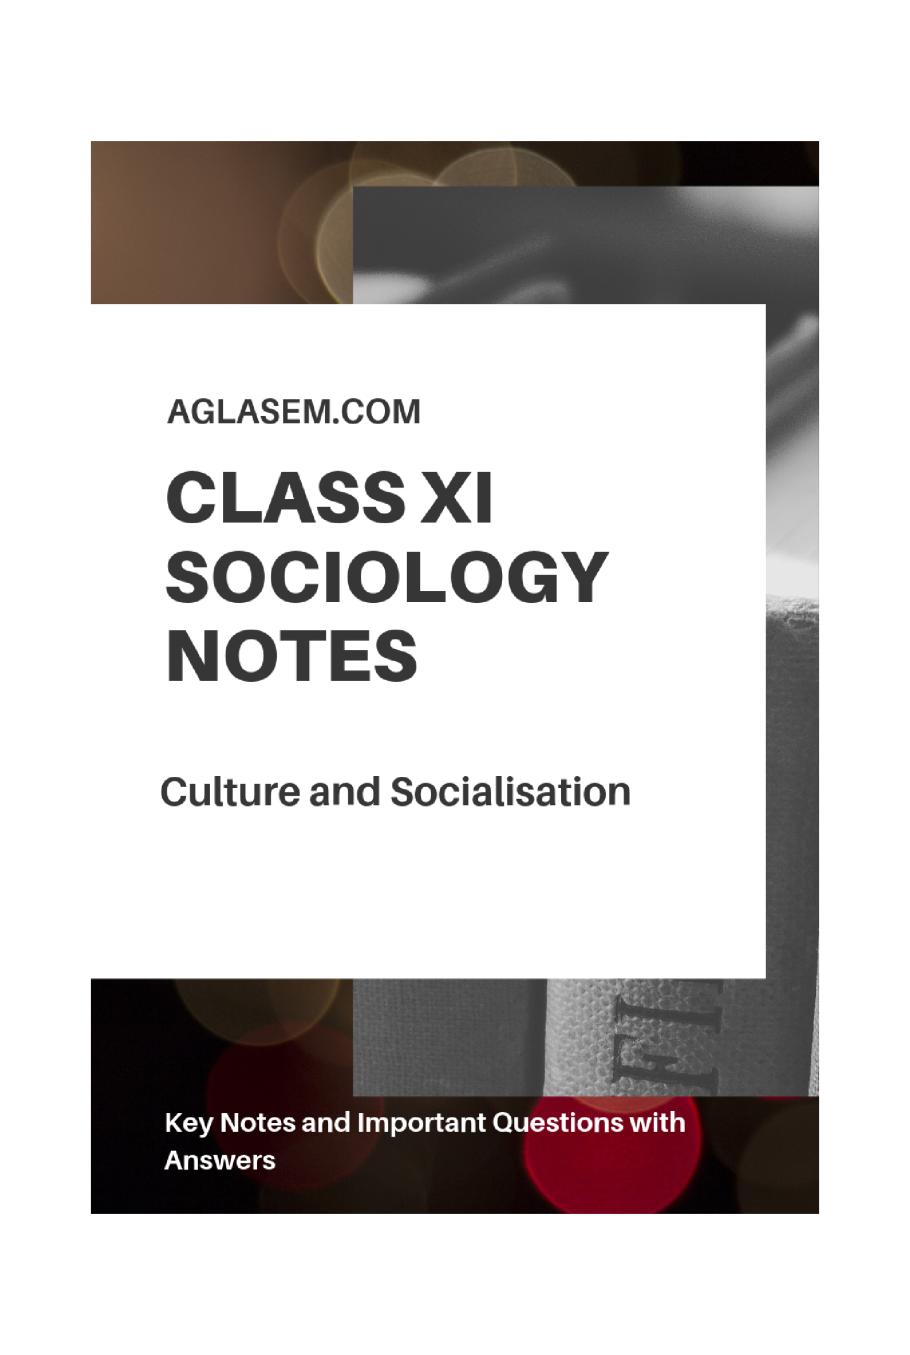 Class 11 Sociology Notes for Culture and Socialisation